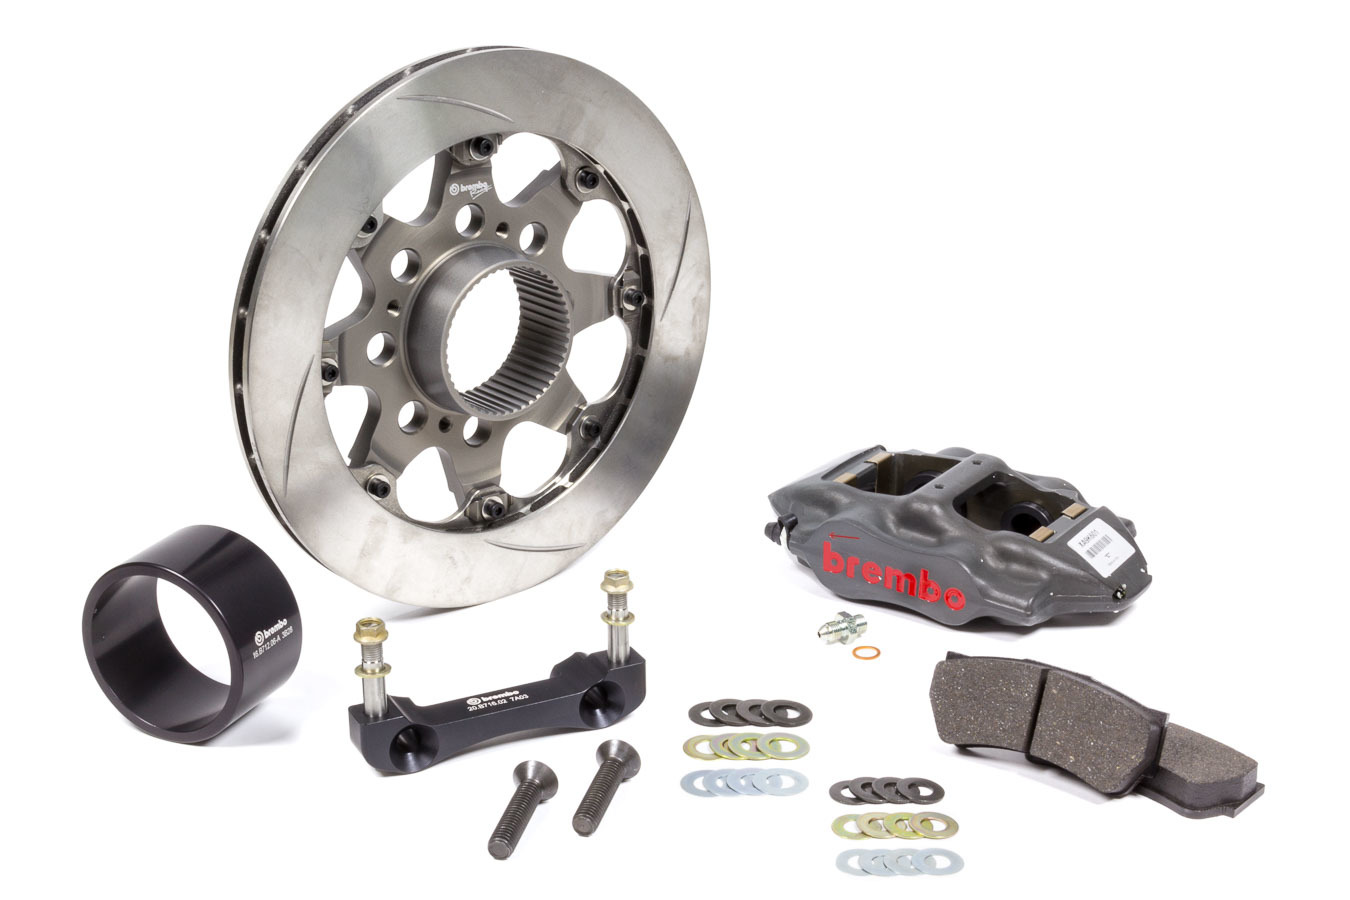 Rear Inboard Sprint Car Brake Kit